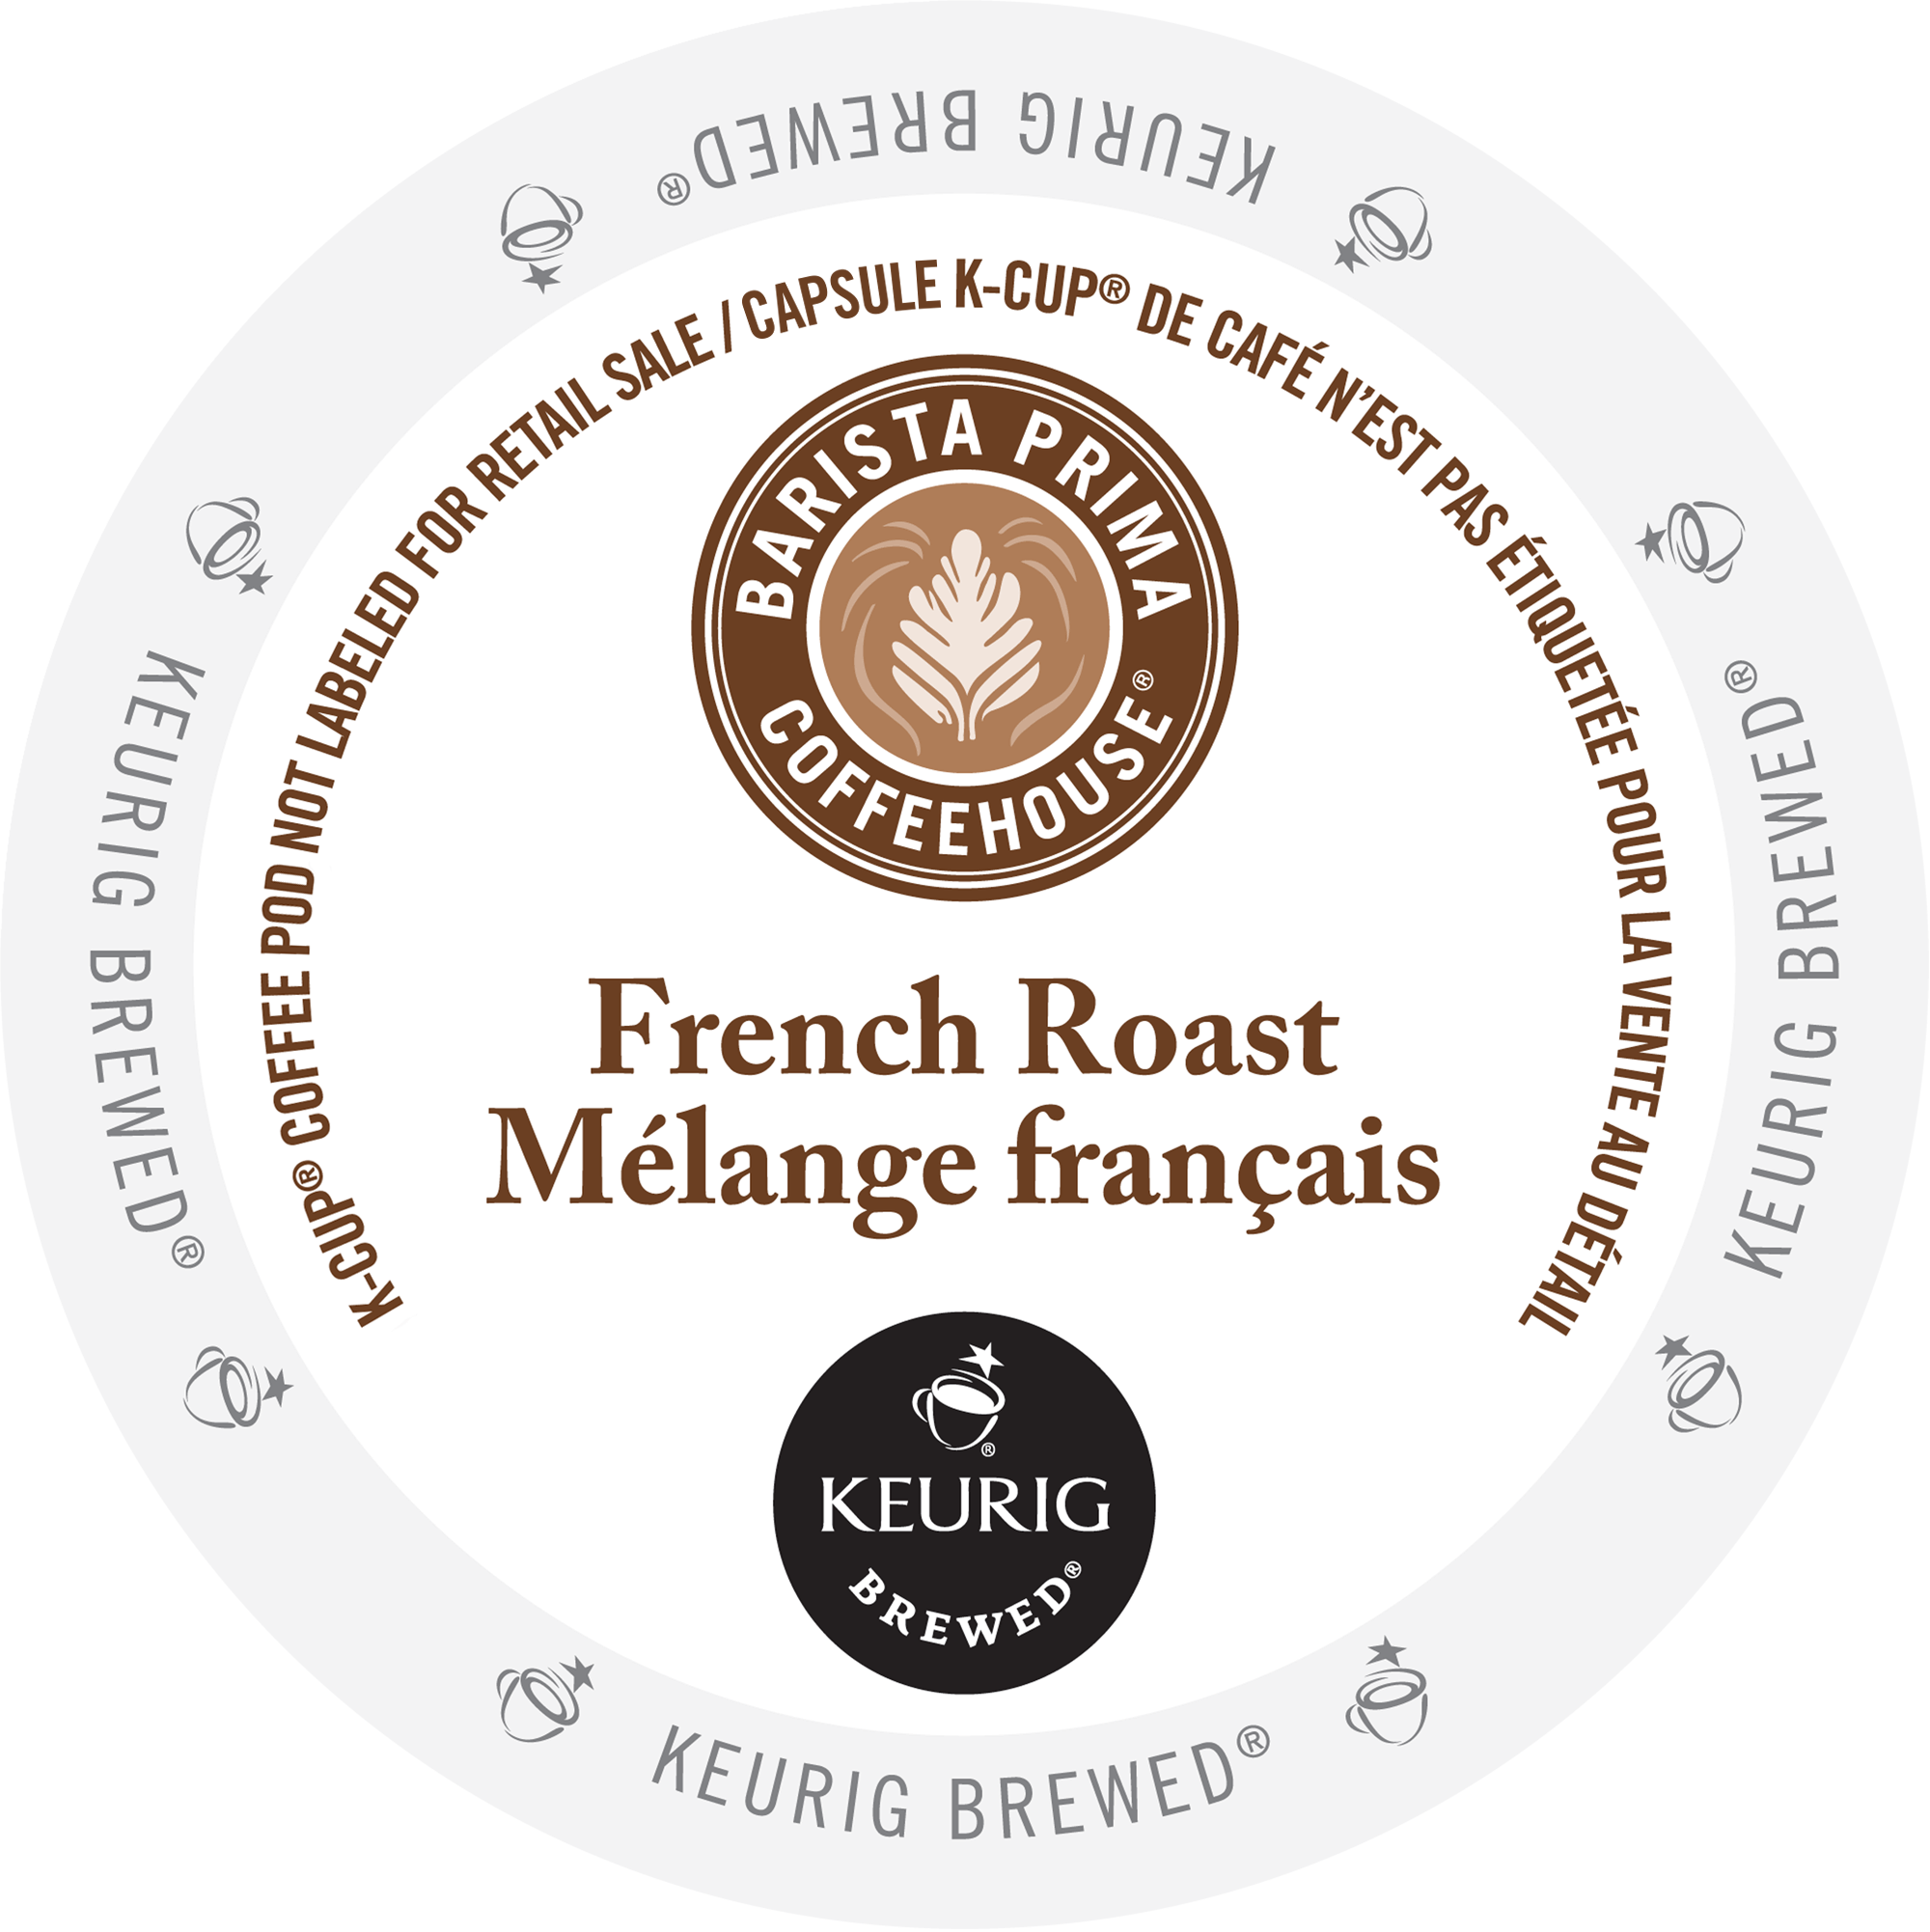 french-roast-coffee-barista-prima-coffeehouse-k-cup_ca_general 2